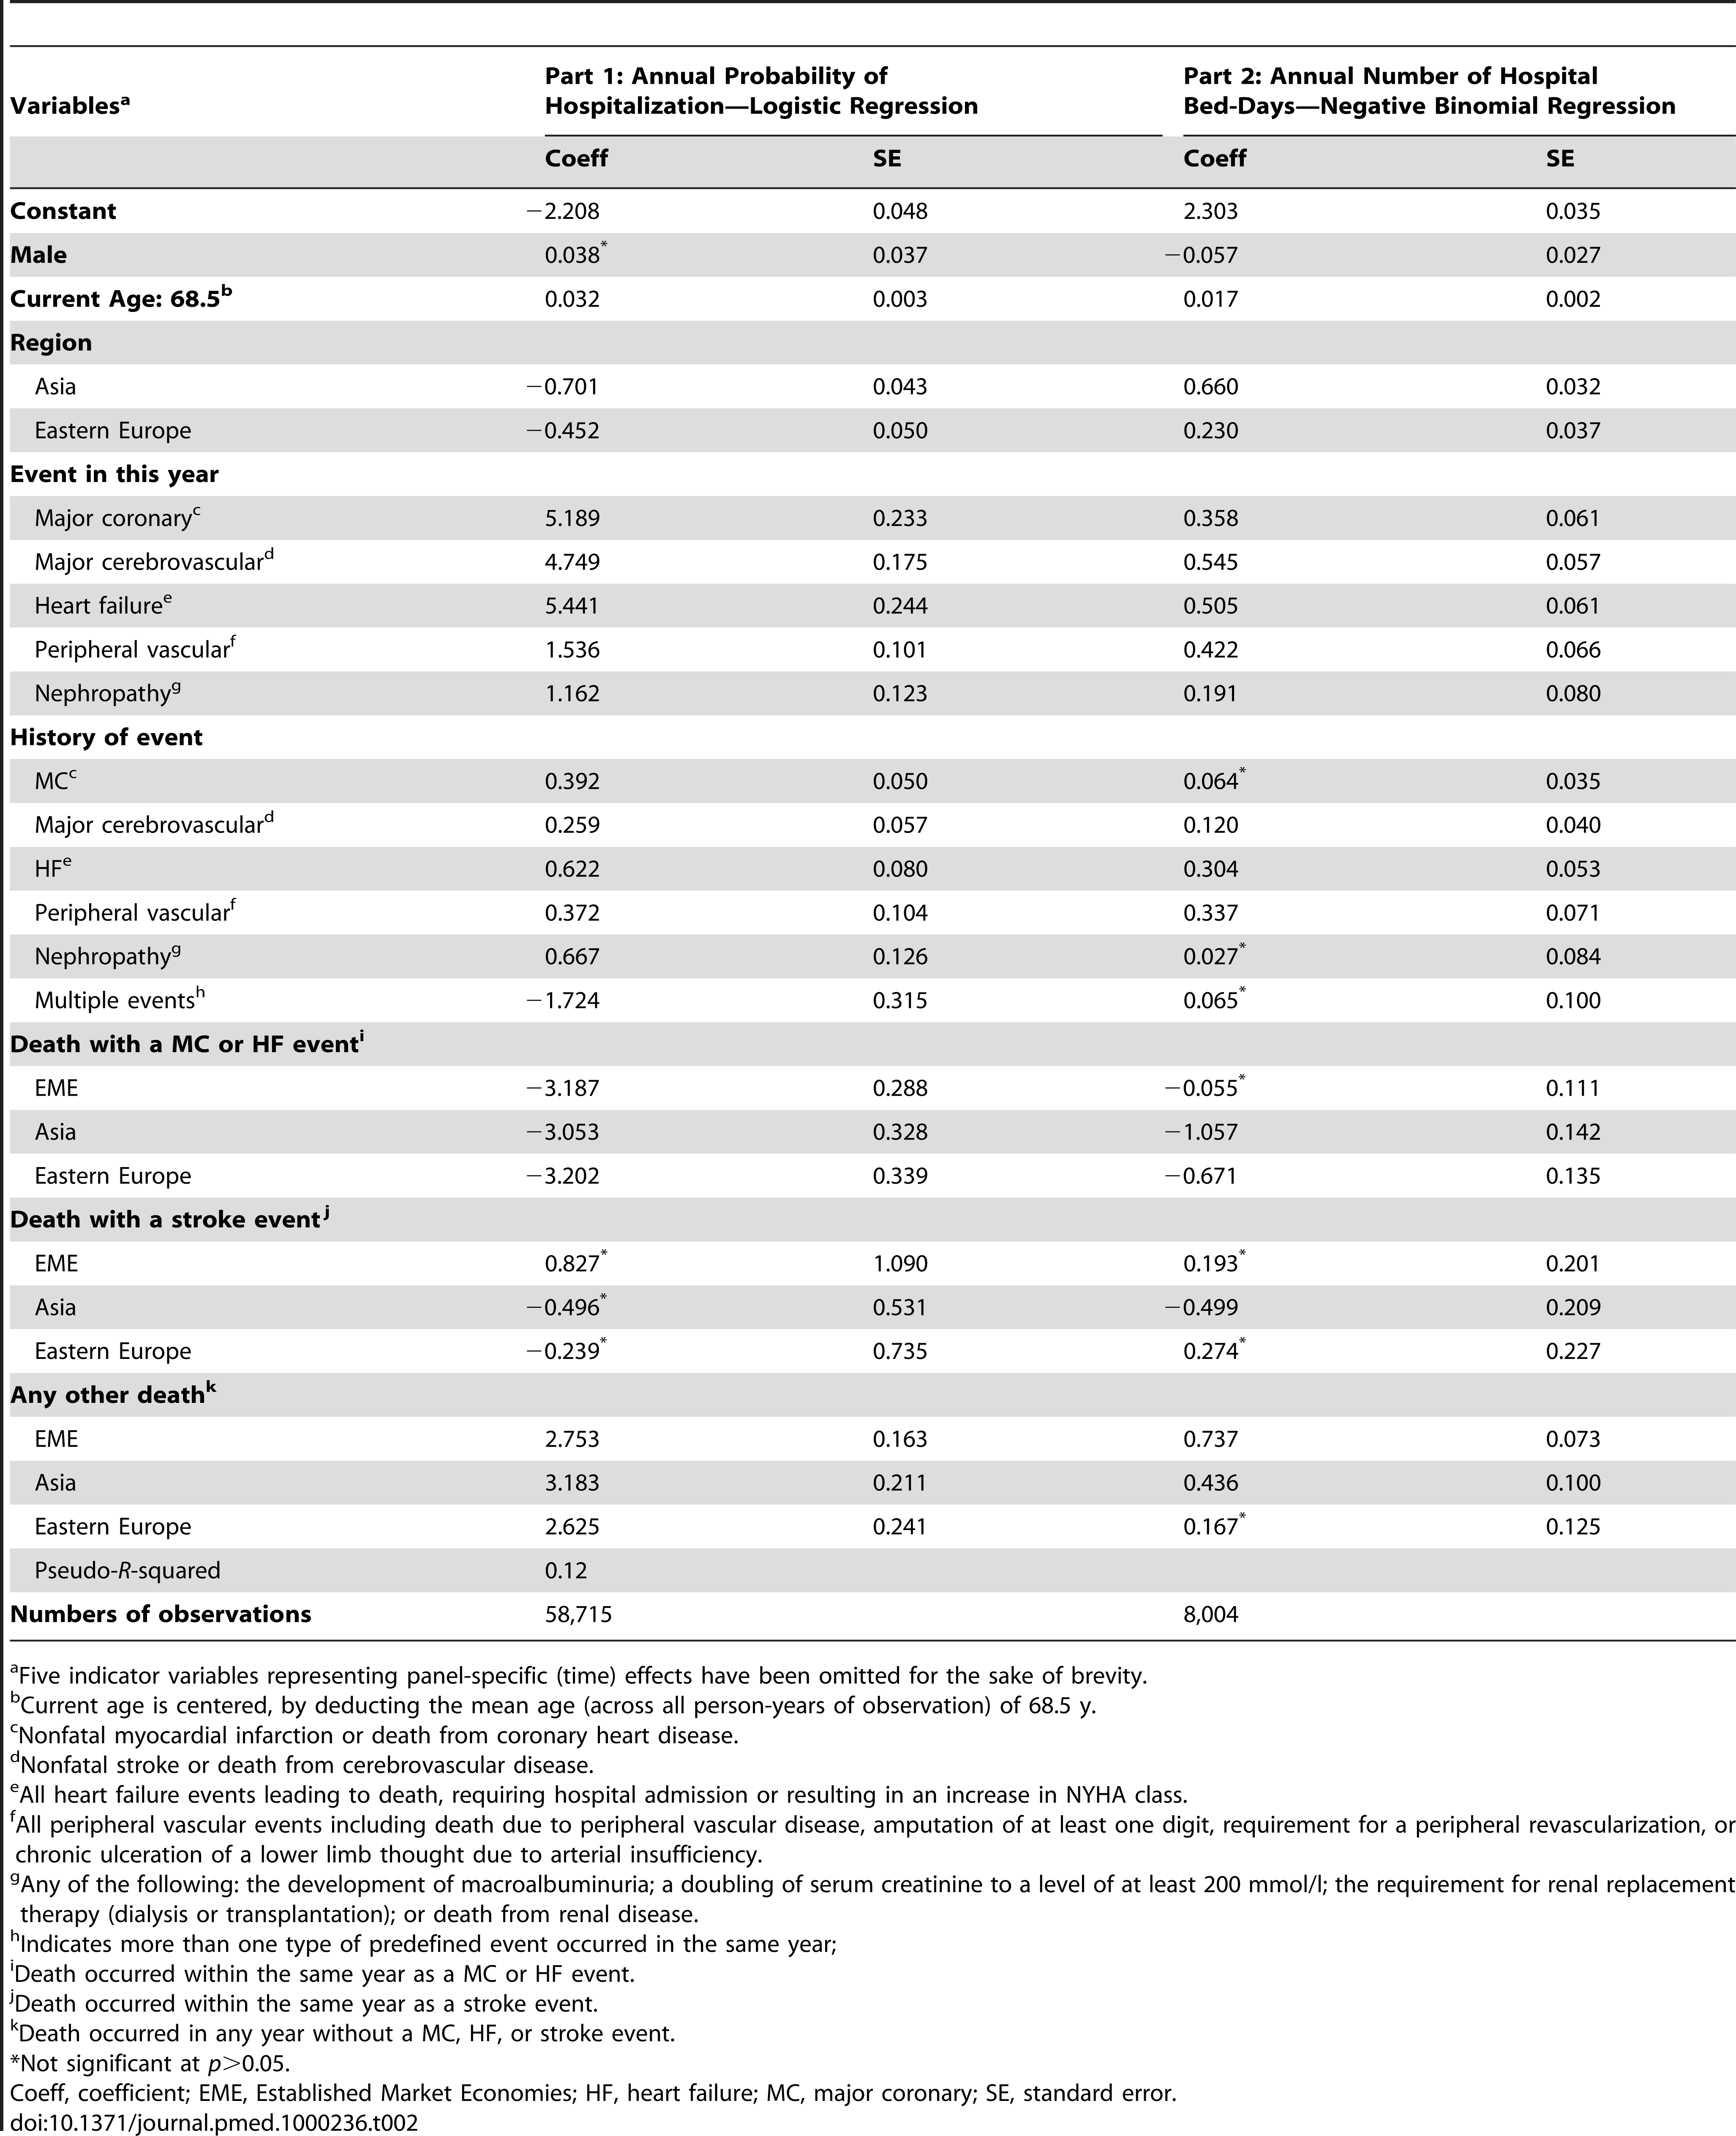 Regression results for probability of hospitalization and expected number of hospital bed-days given at least one hospitalization.